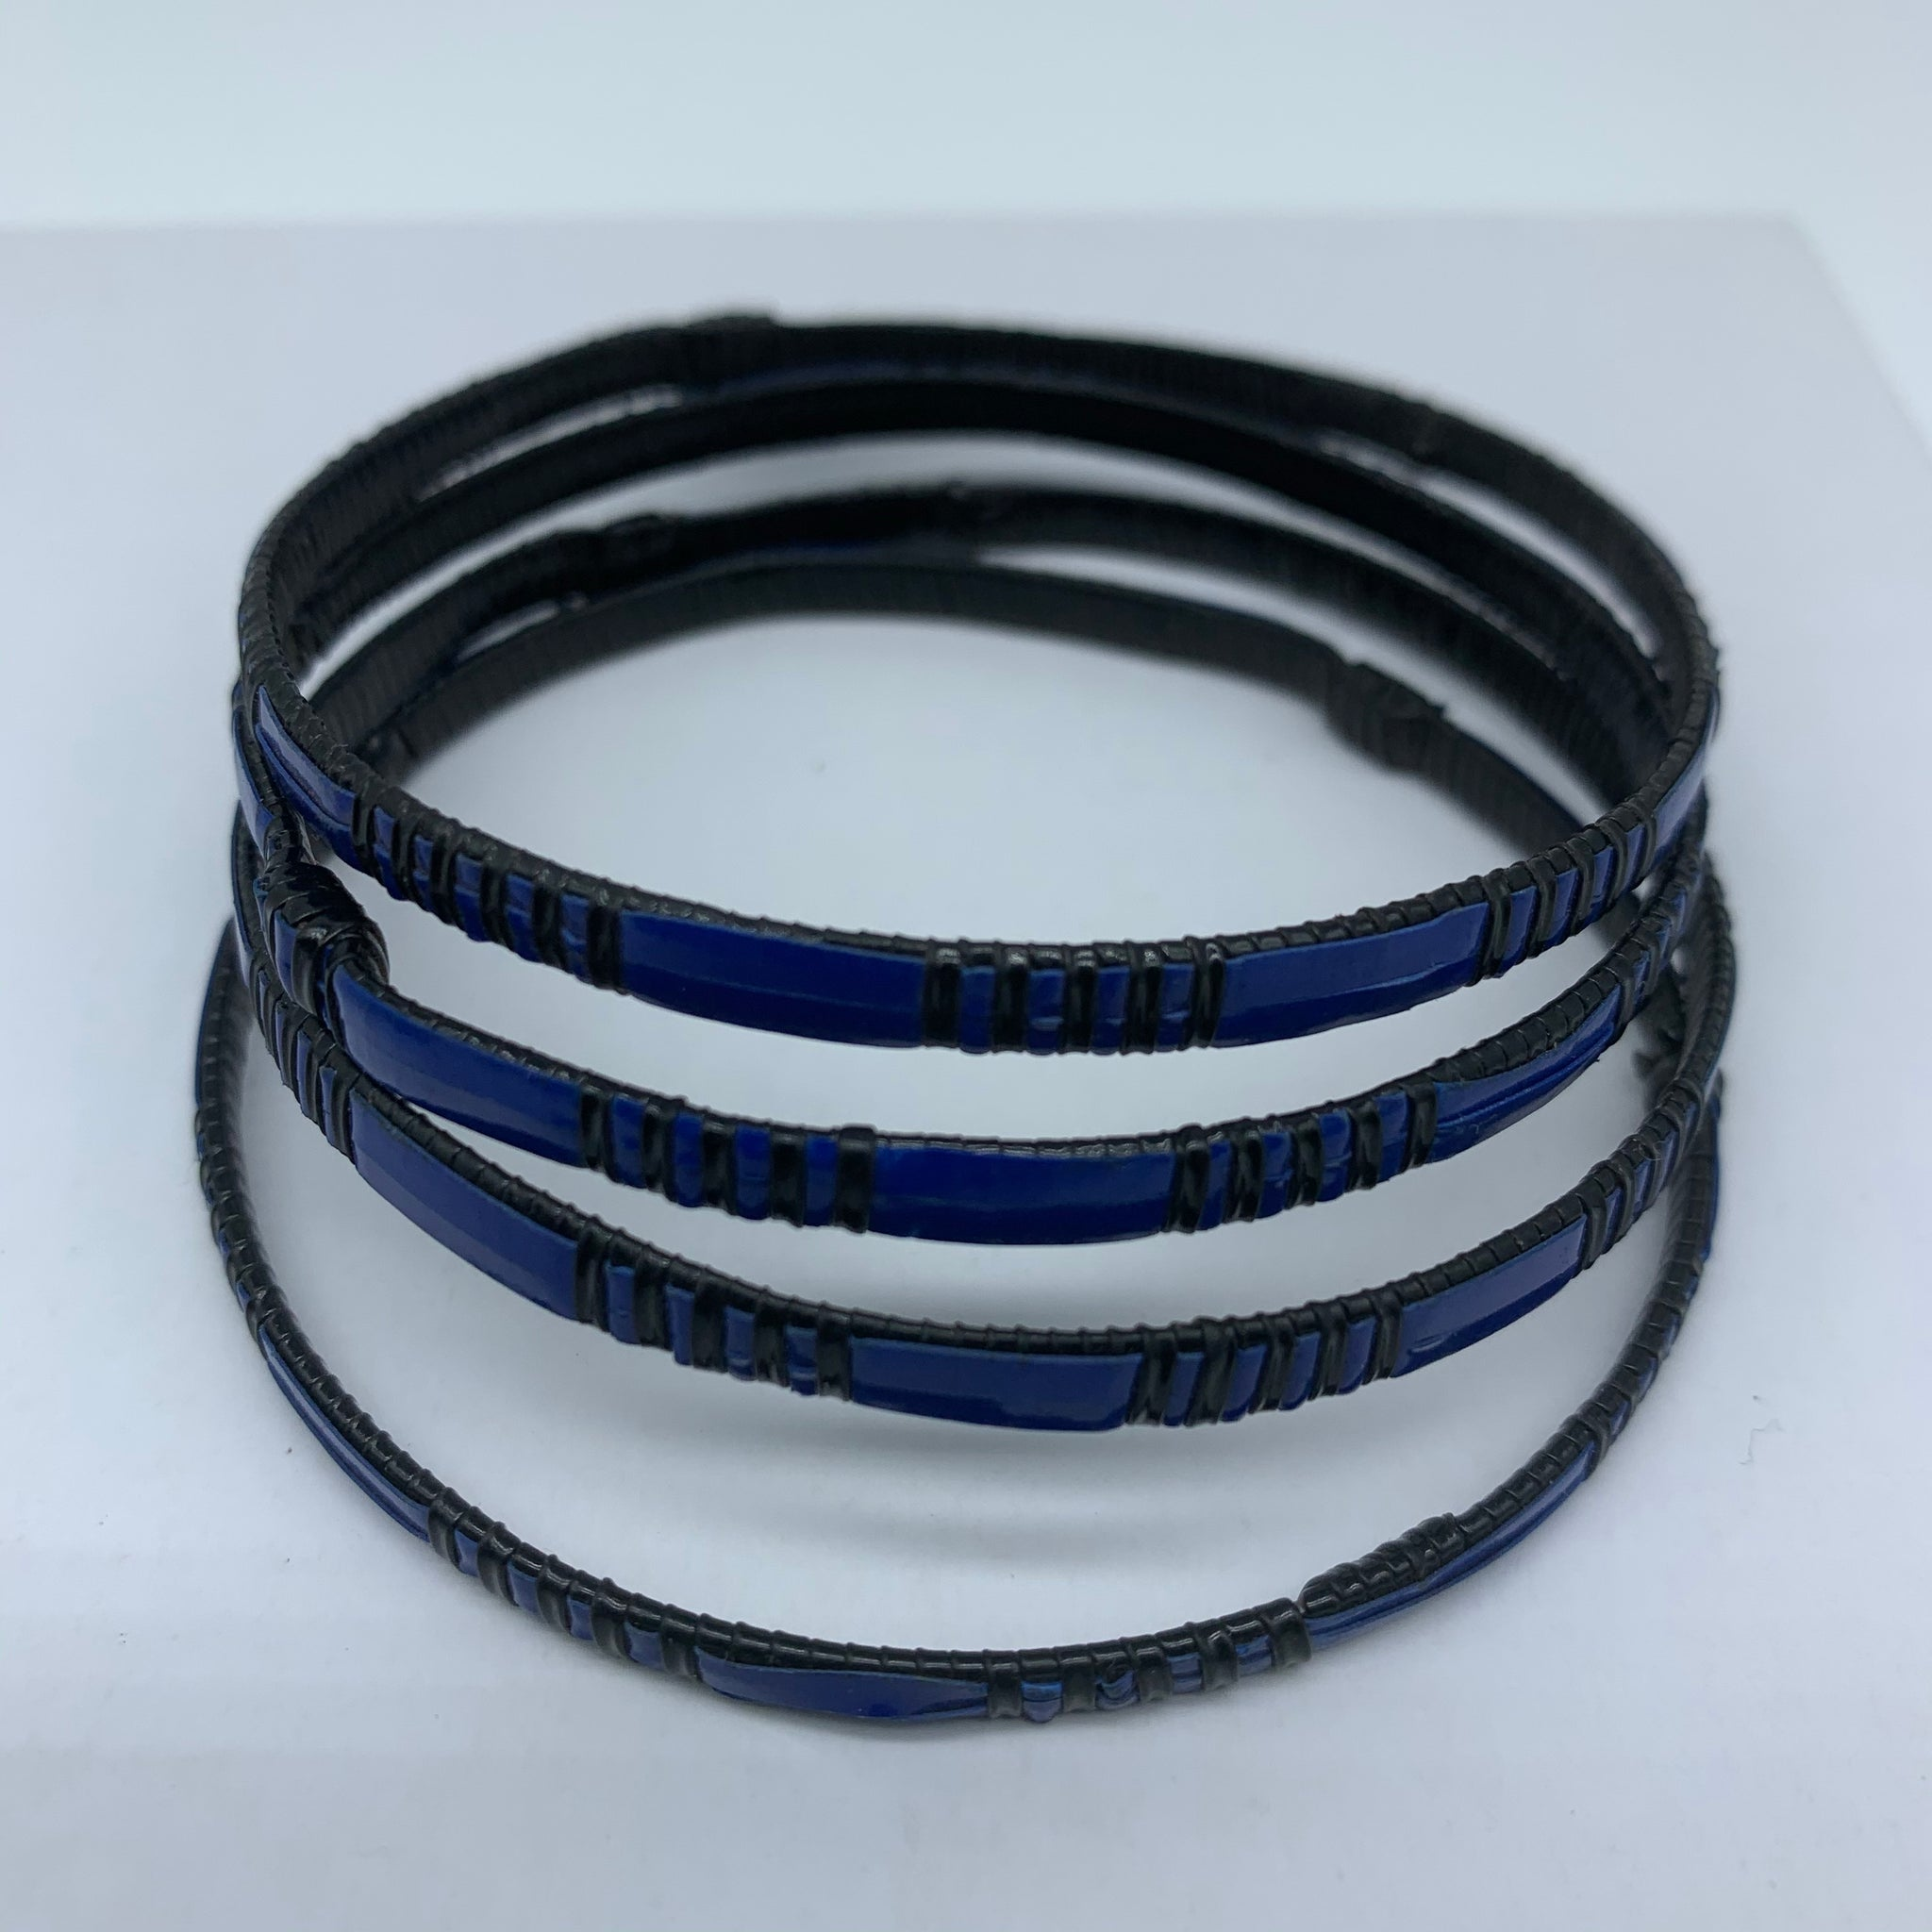 Metal W/ Plastic Bangle-XS Blue Variation